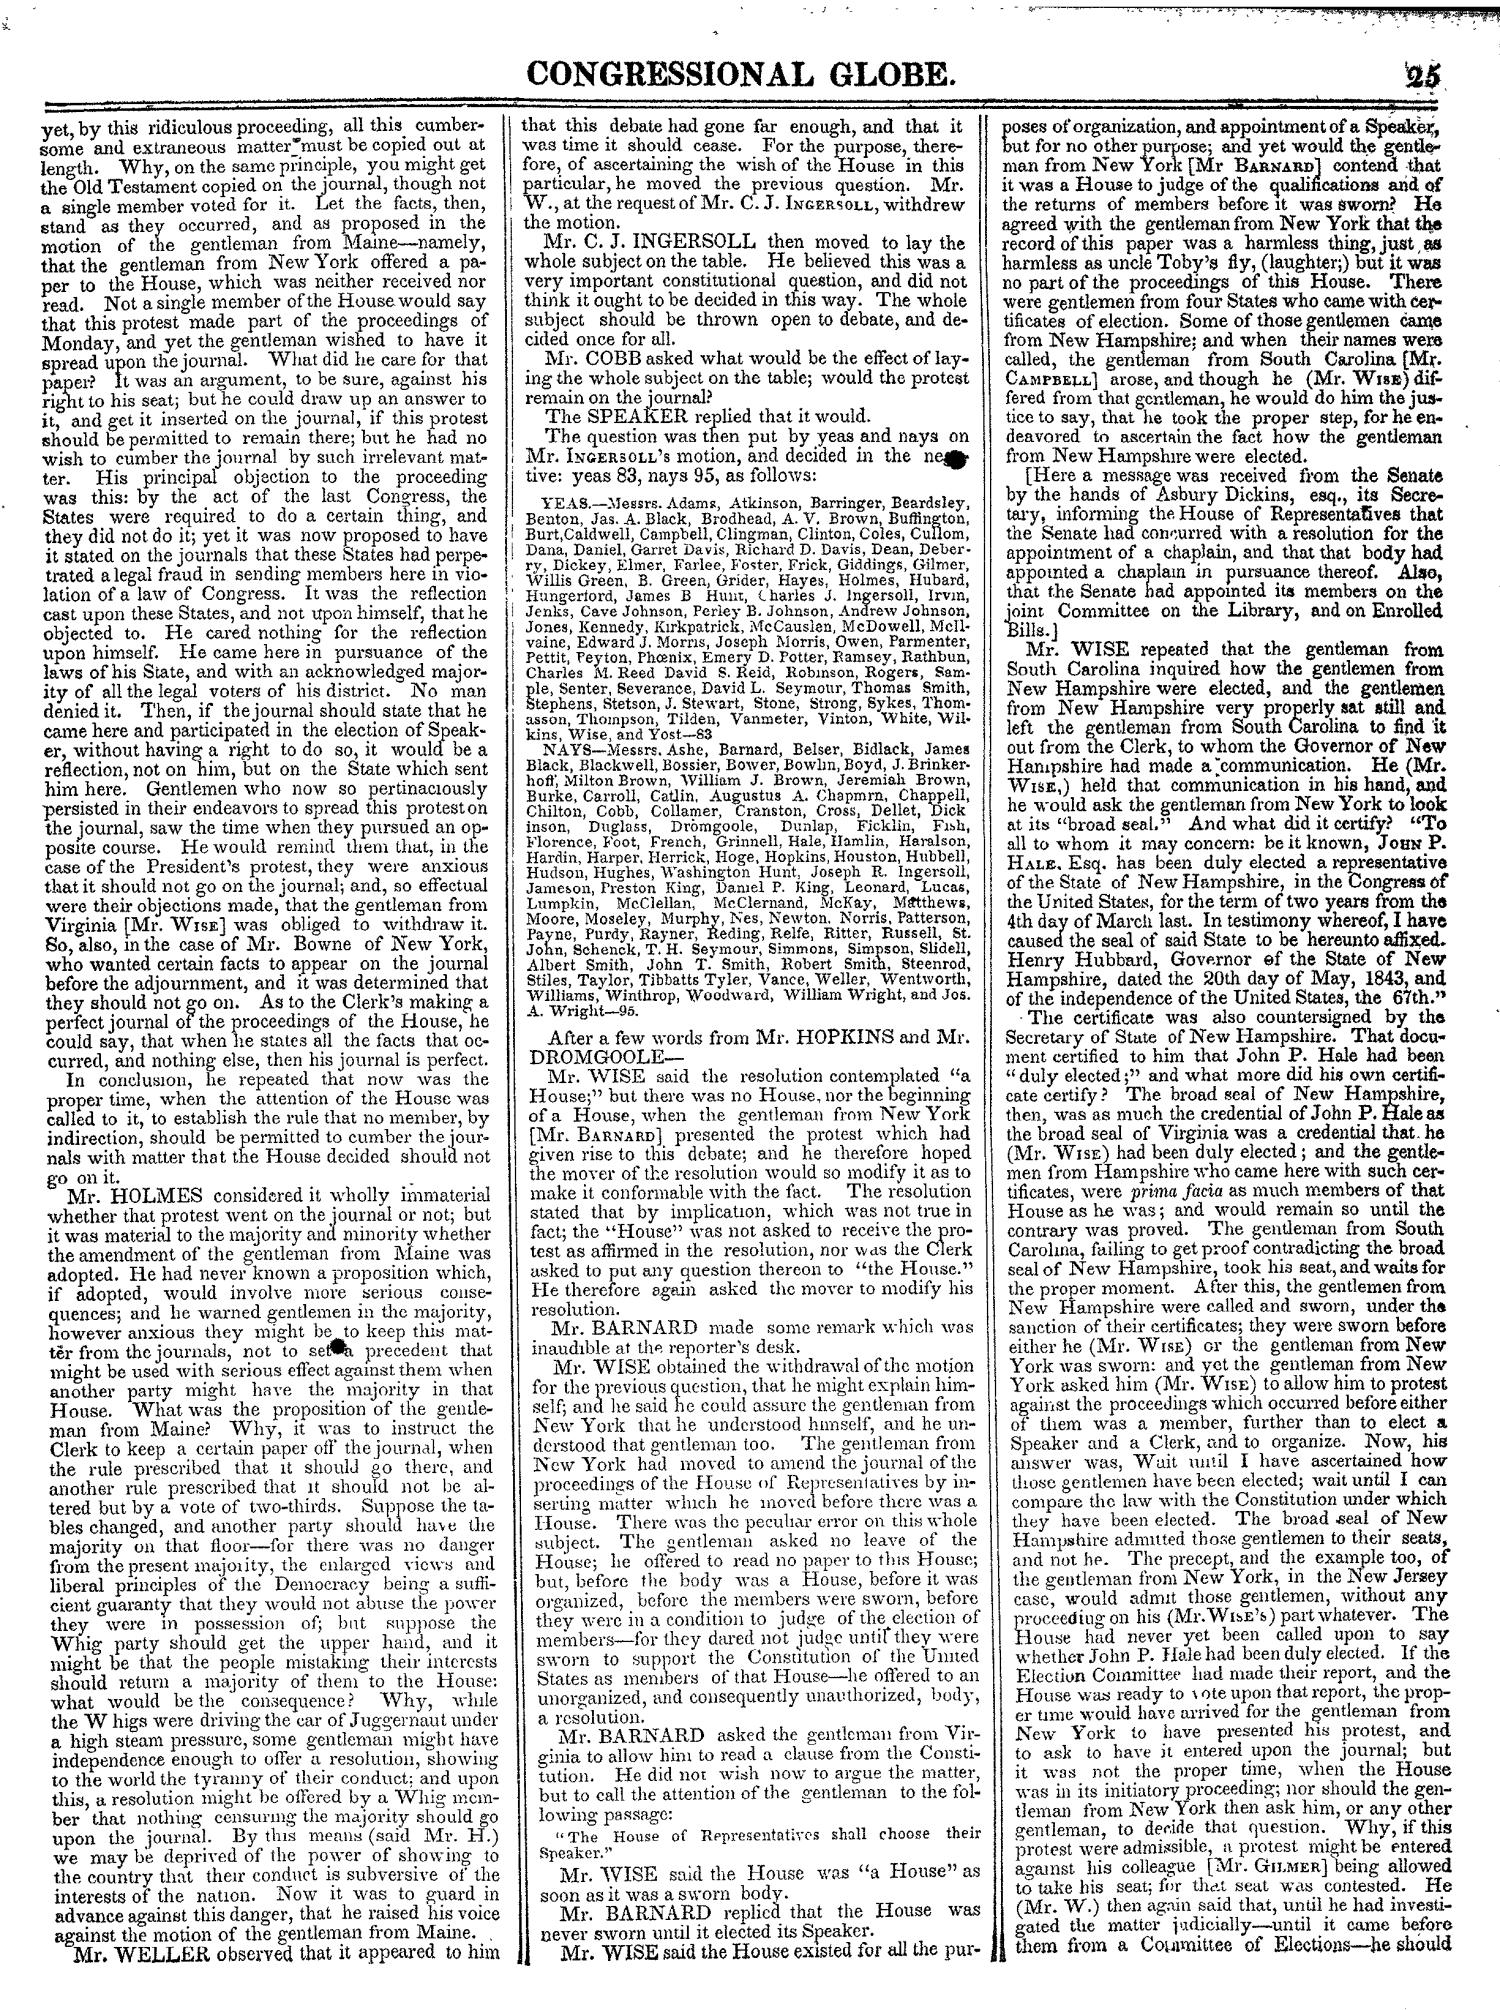 The Congressional Globe, Volume 13, Part 1: Twenty-Eighth Congress, First Session                                                                                                      25